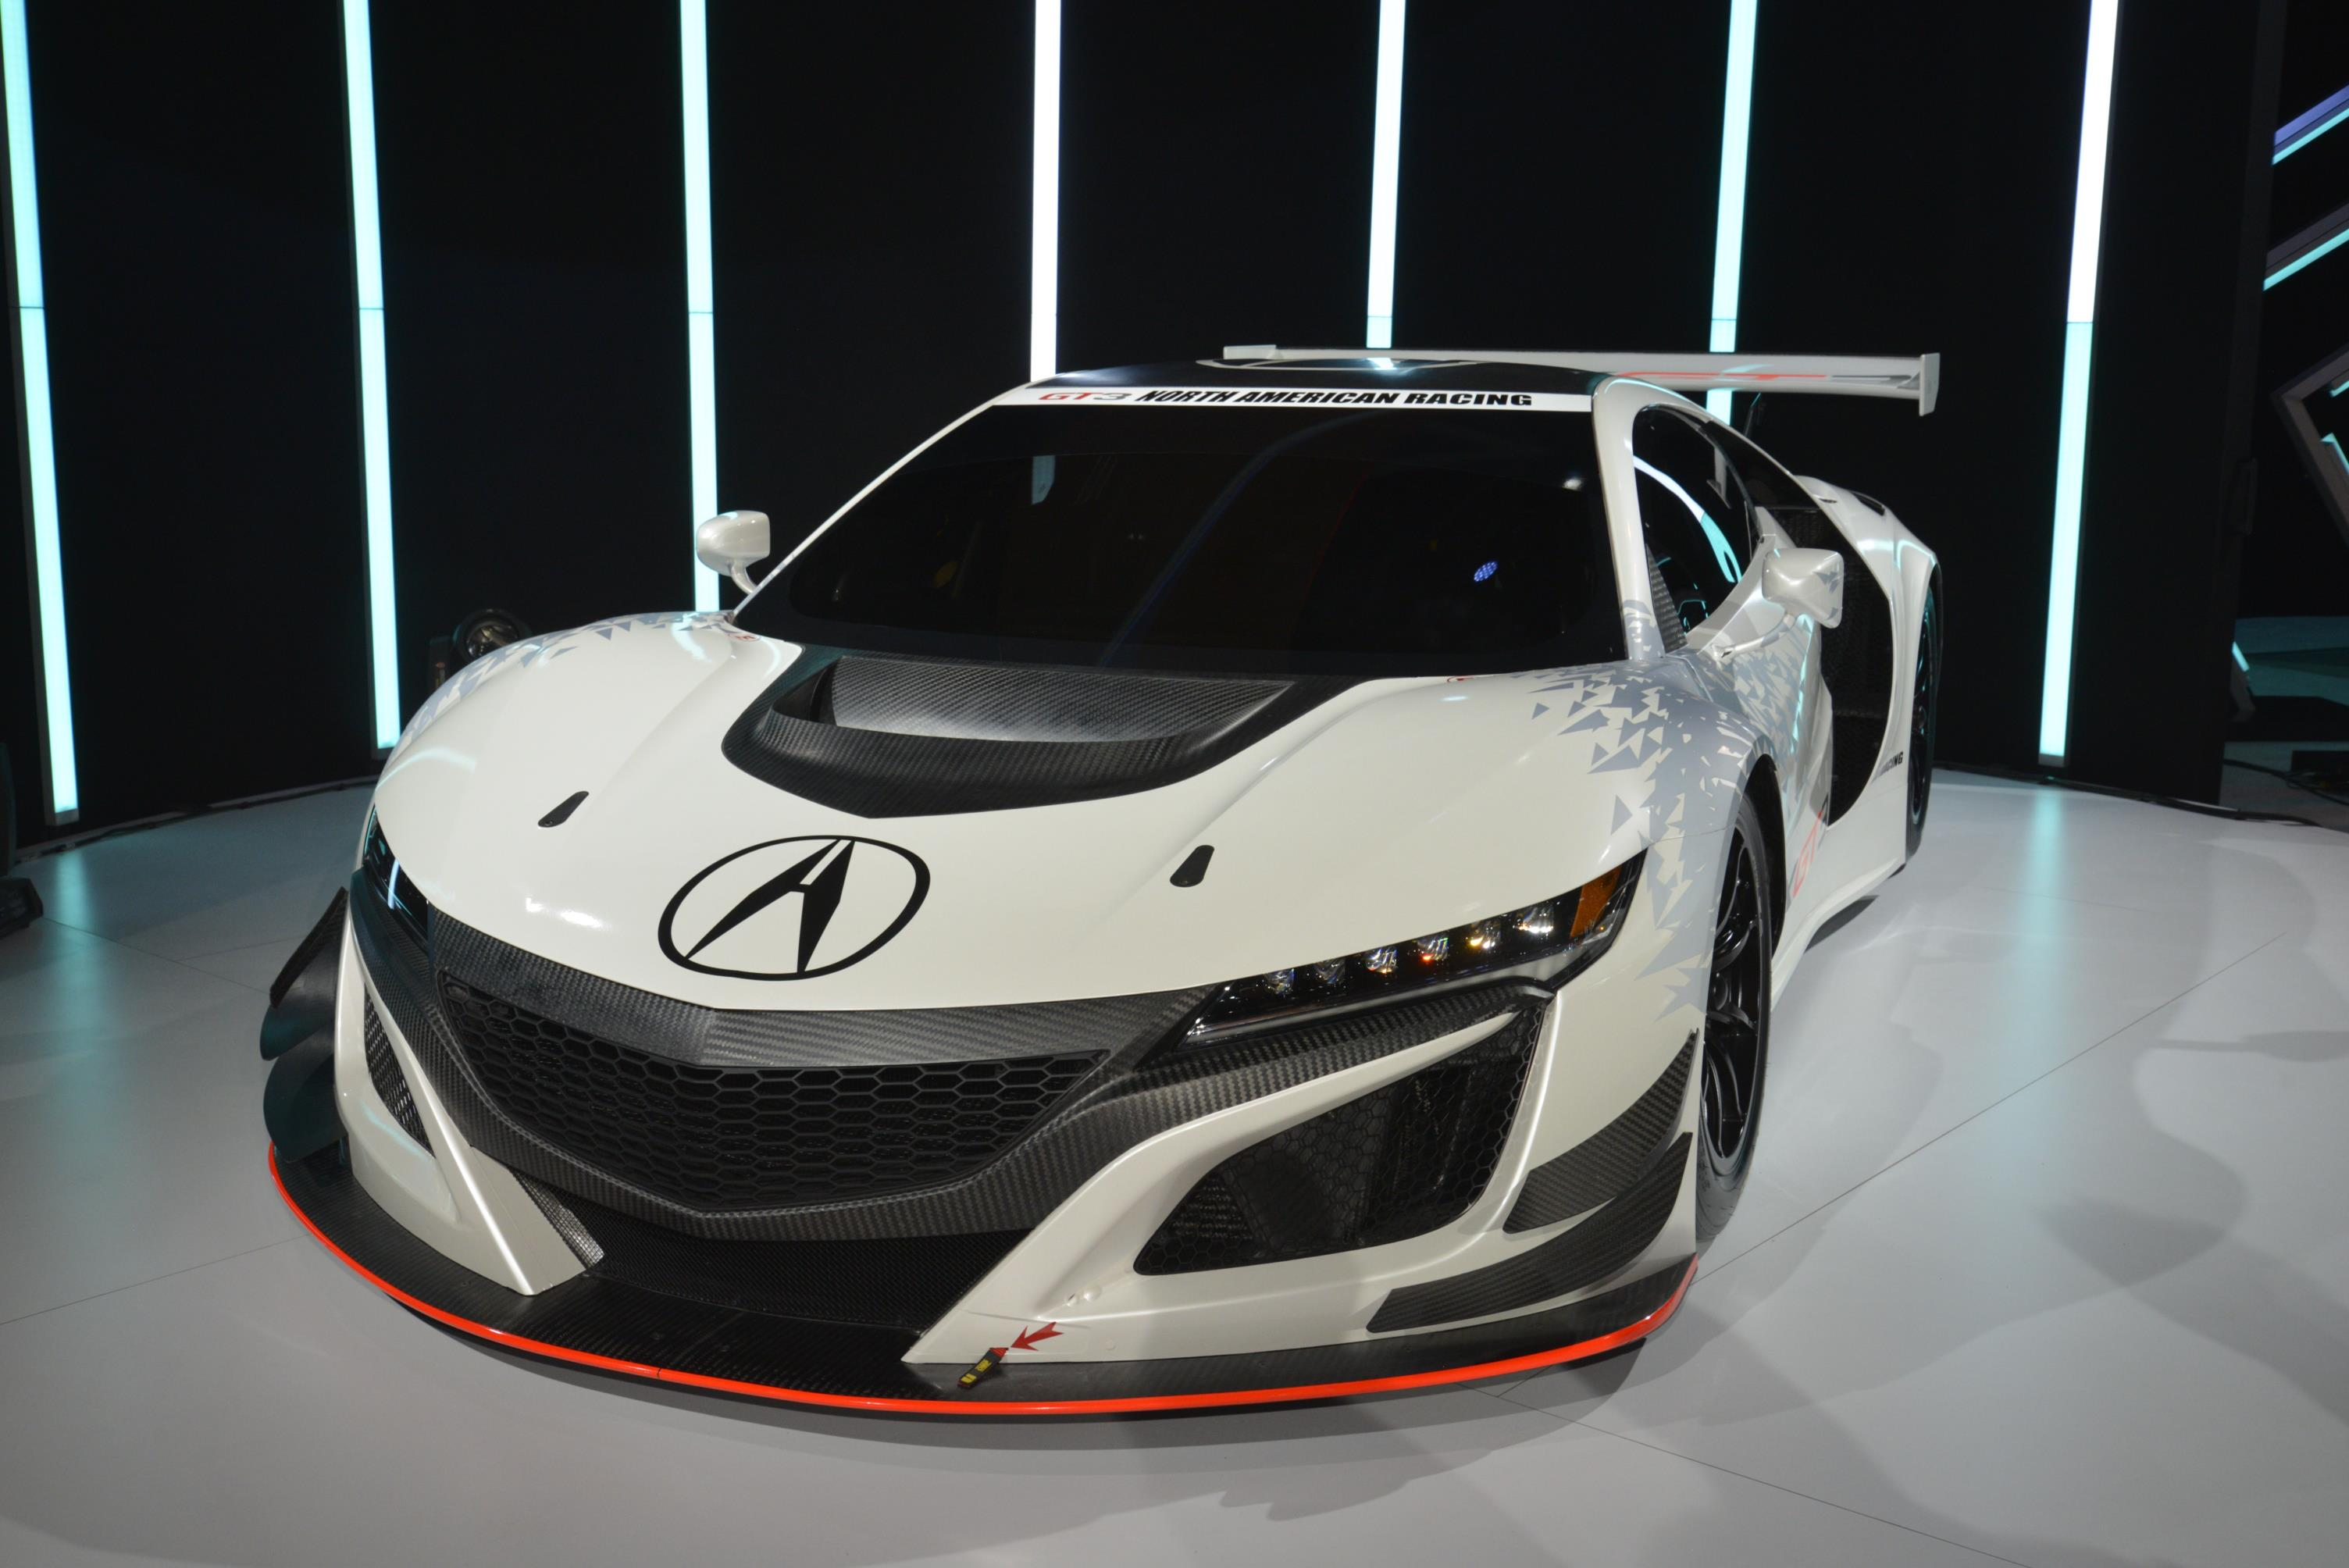 2019 Acura NSX Concept photo - 2